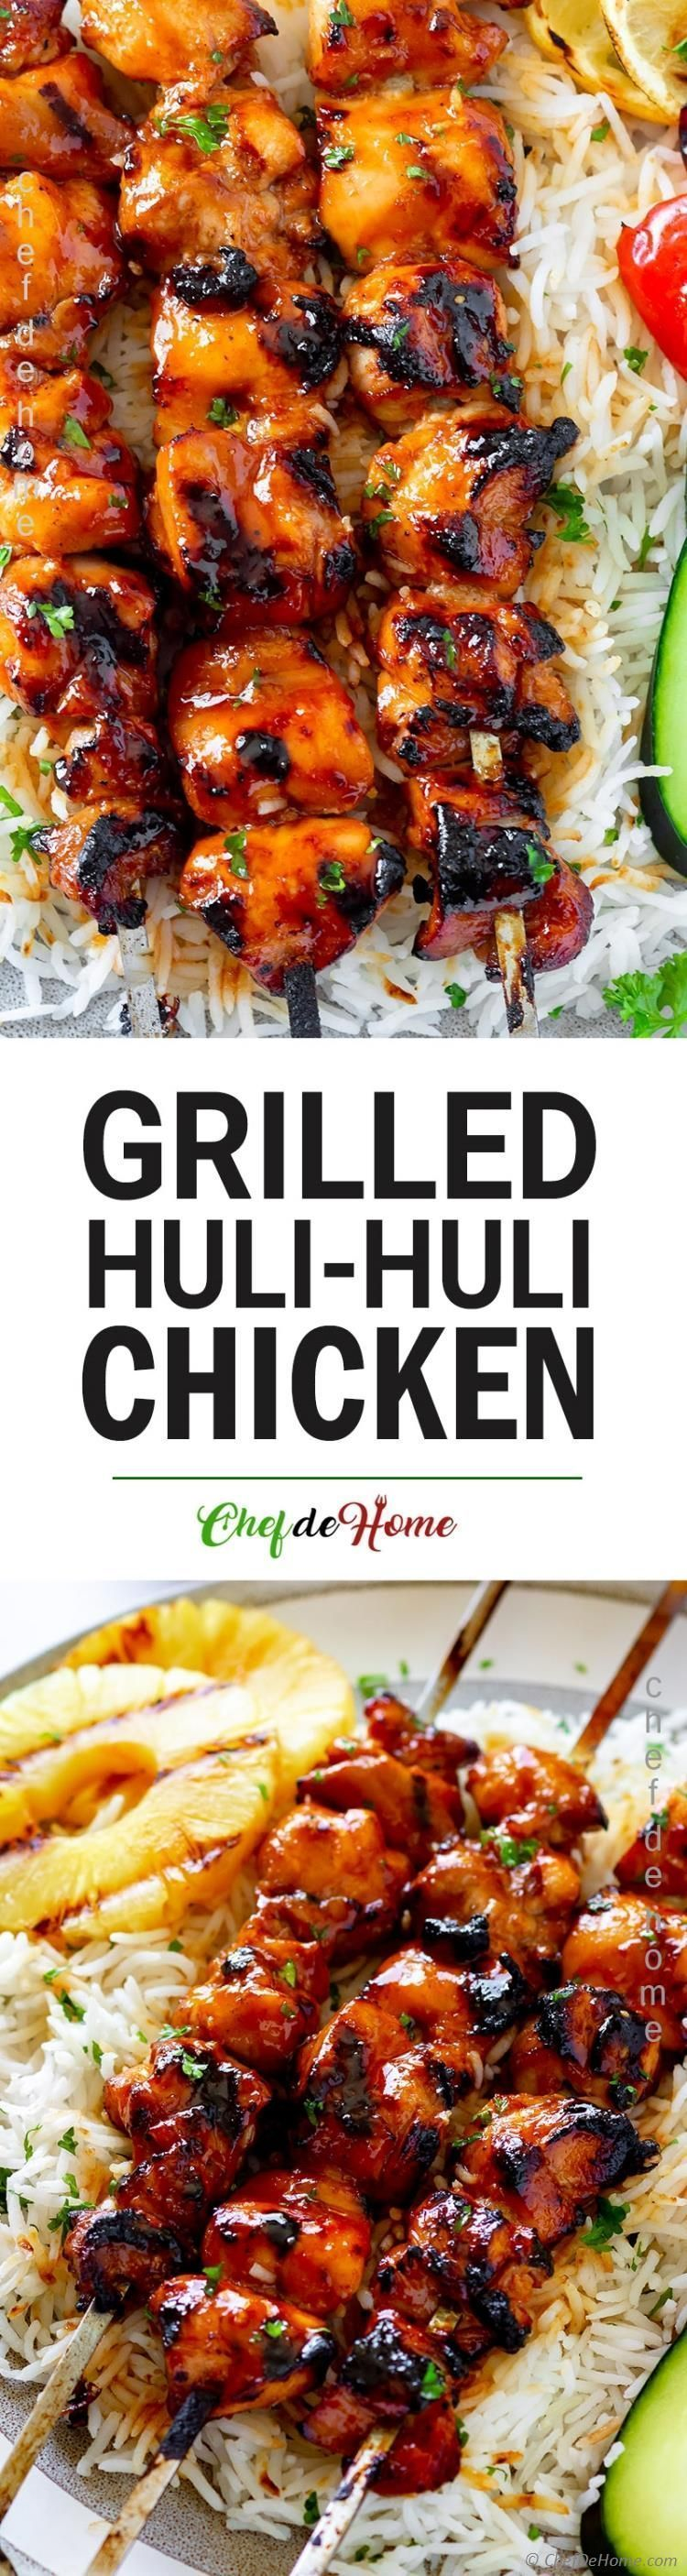 Huli Huli Chicken with Amazing Huli Huli Sauce - Huli Huli Chicken Recipe | ChefDeHome.com